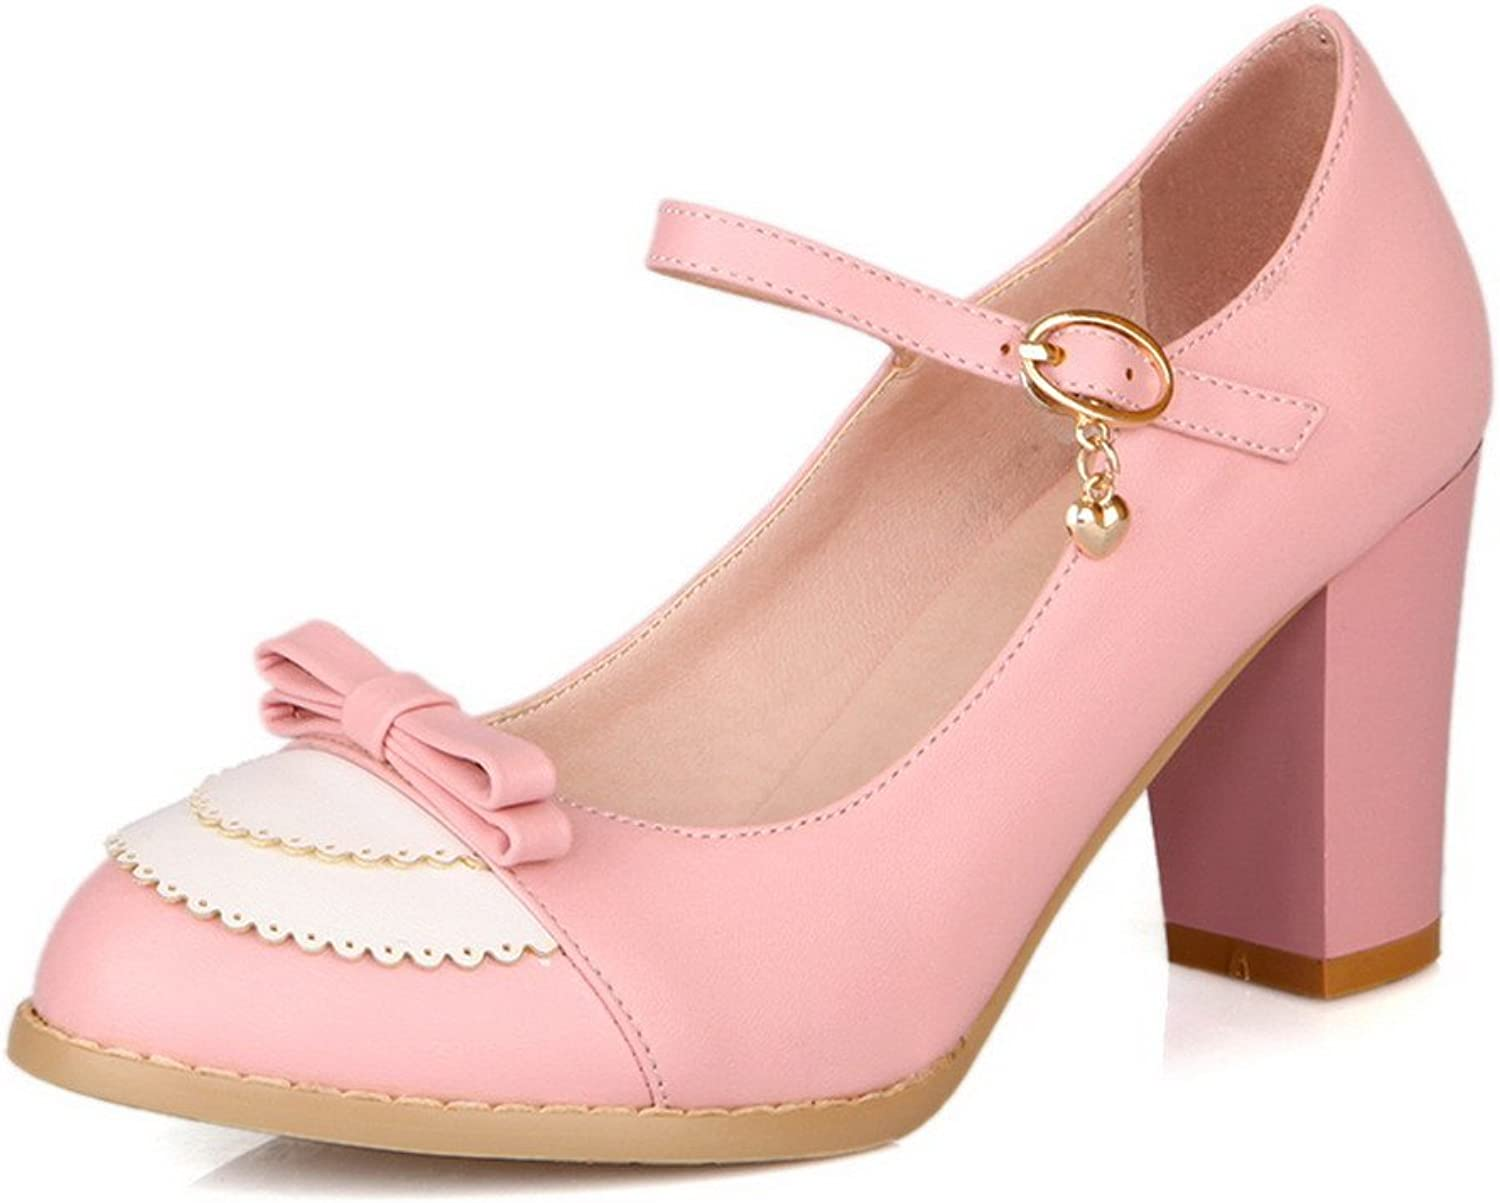 WeiPoot Women's Assorted colors Closed Round Toe Kitten Heel PU Pumps with Bows